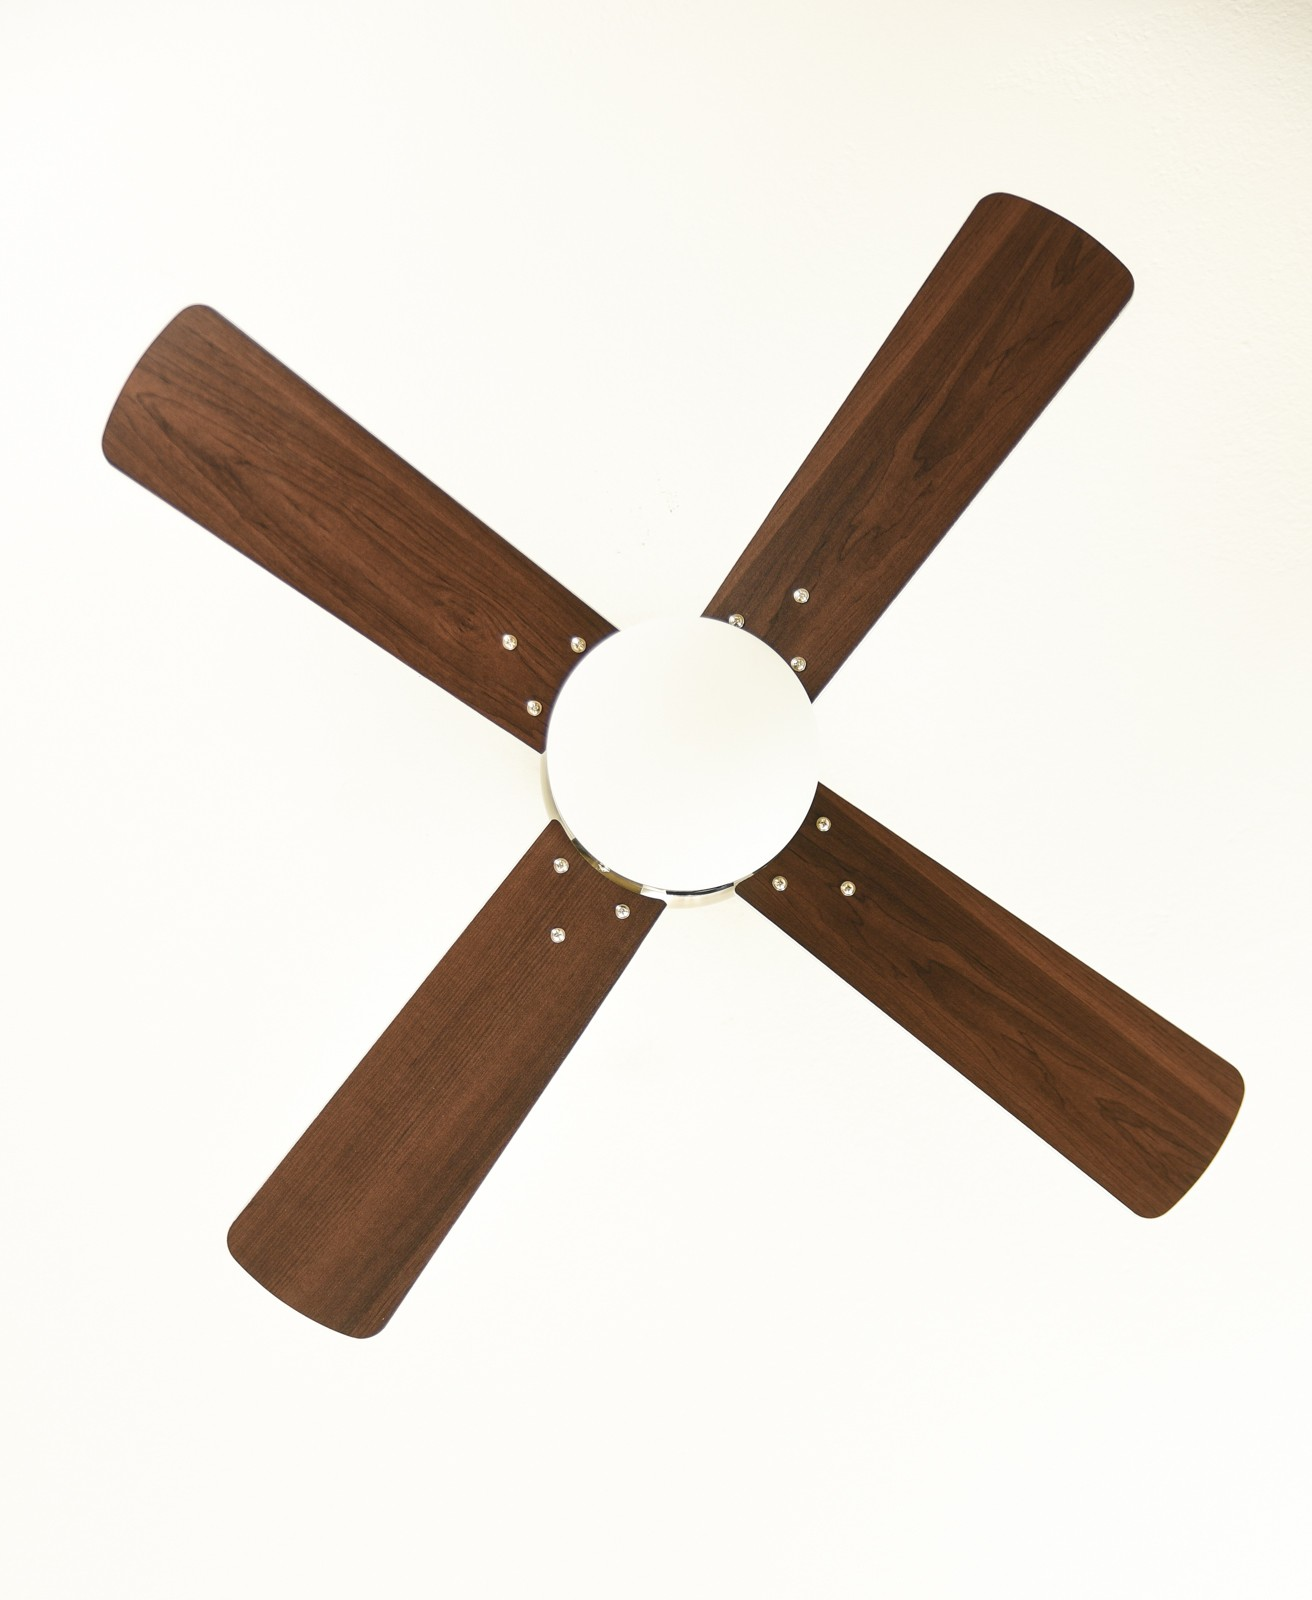 Westinghouse ceiling fan Colosseum brushed nickel including